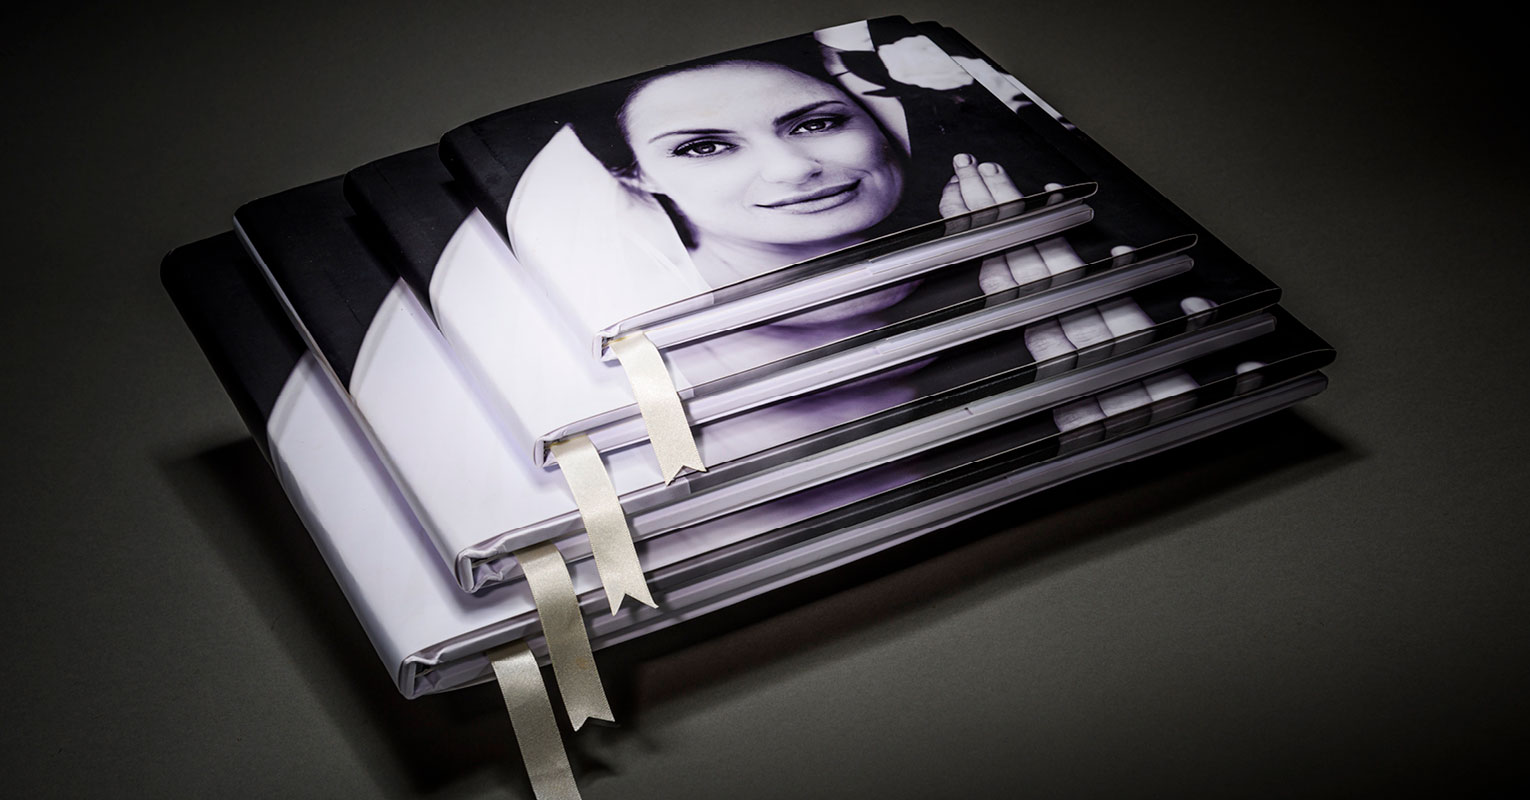 Booked Images Luxury Photo Books